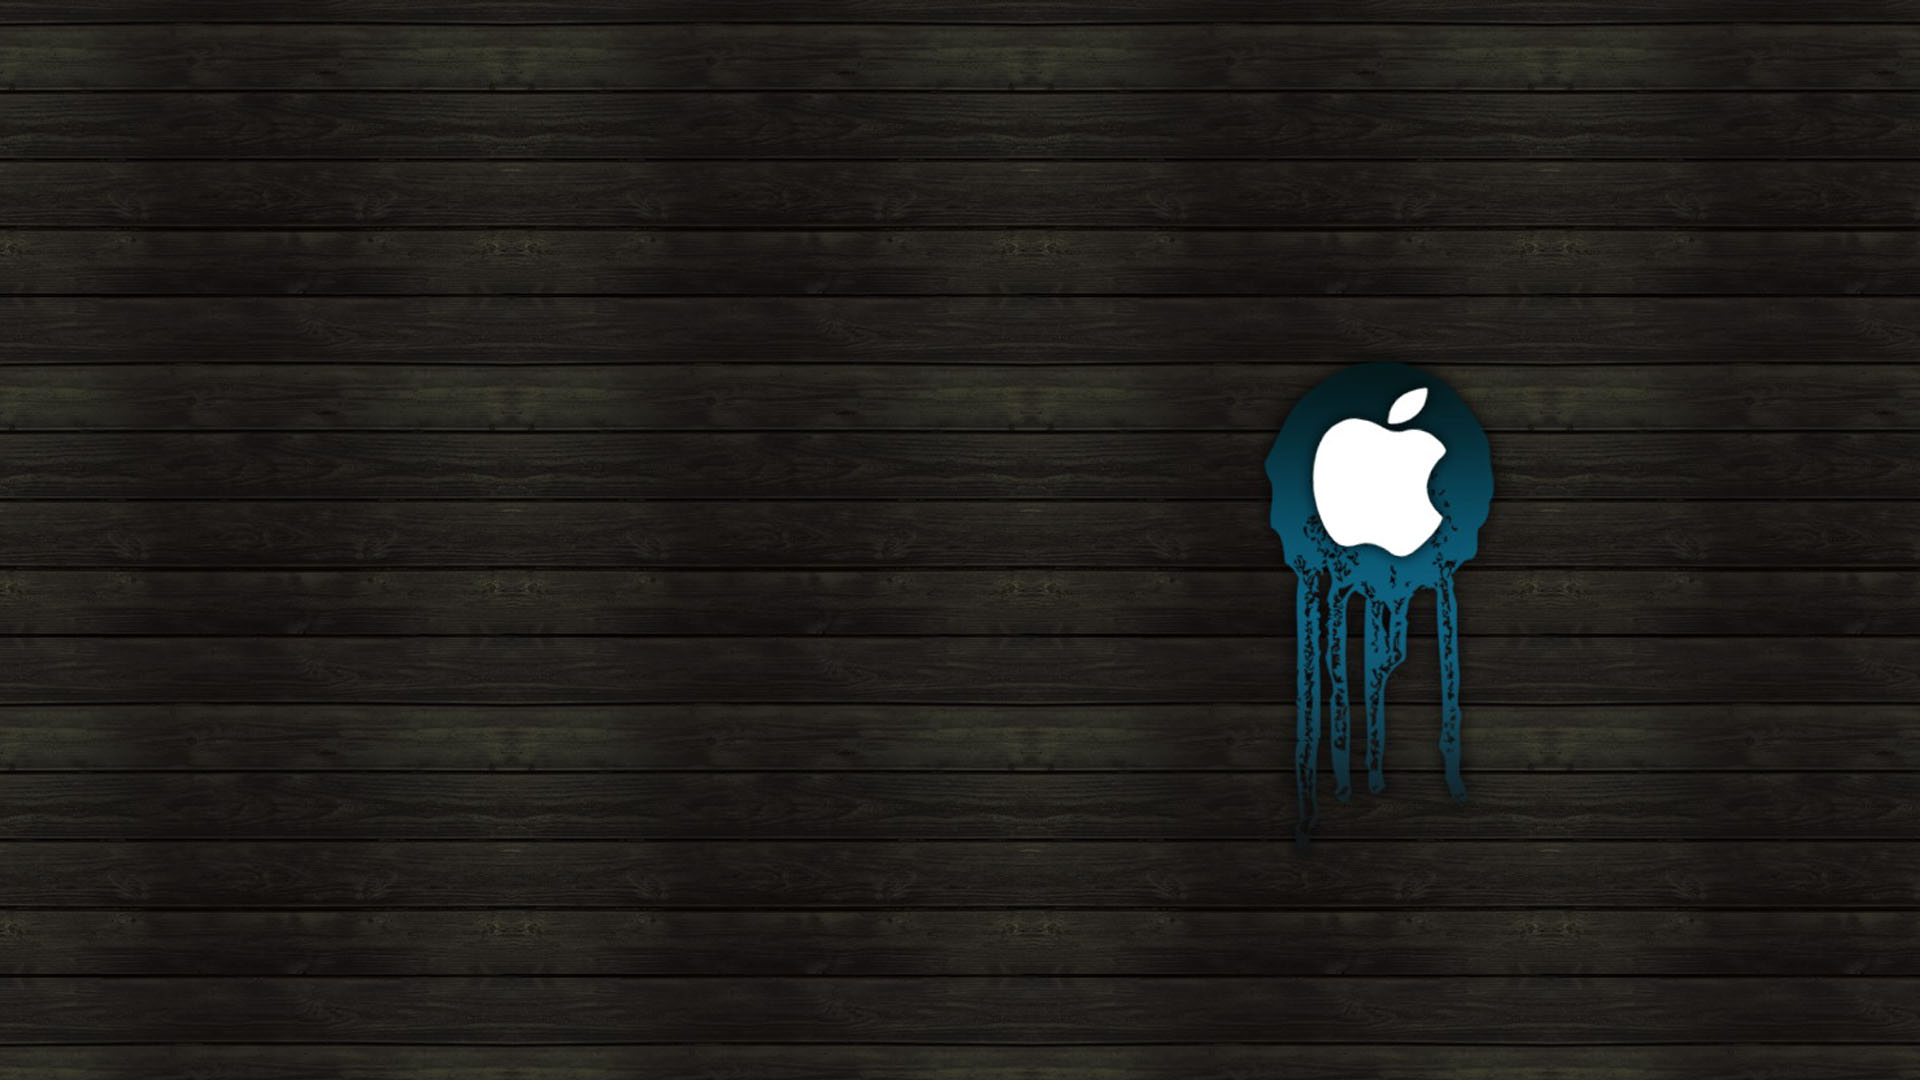 macbook pro retina display wallpaper 1920x1080